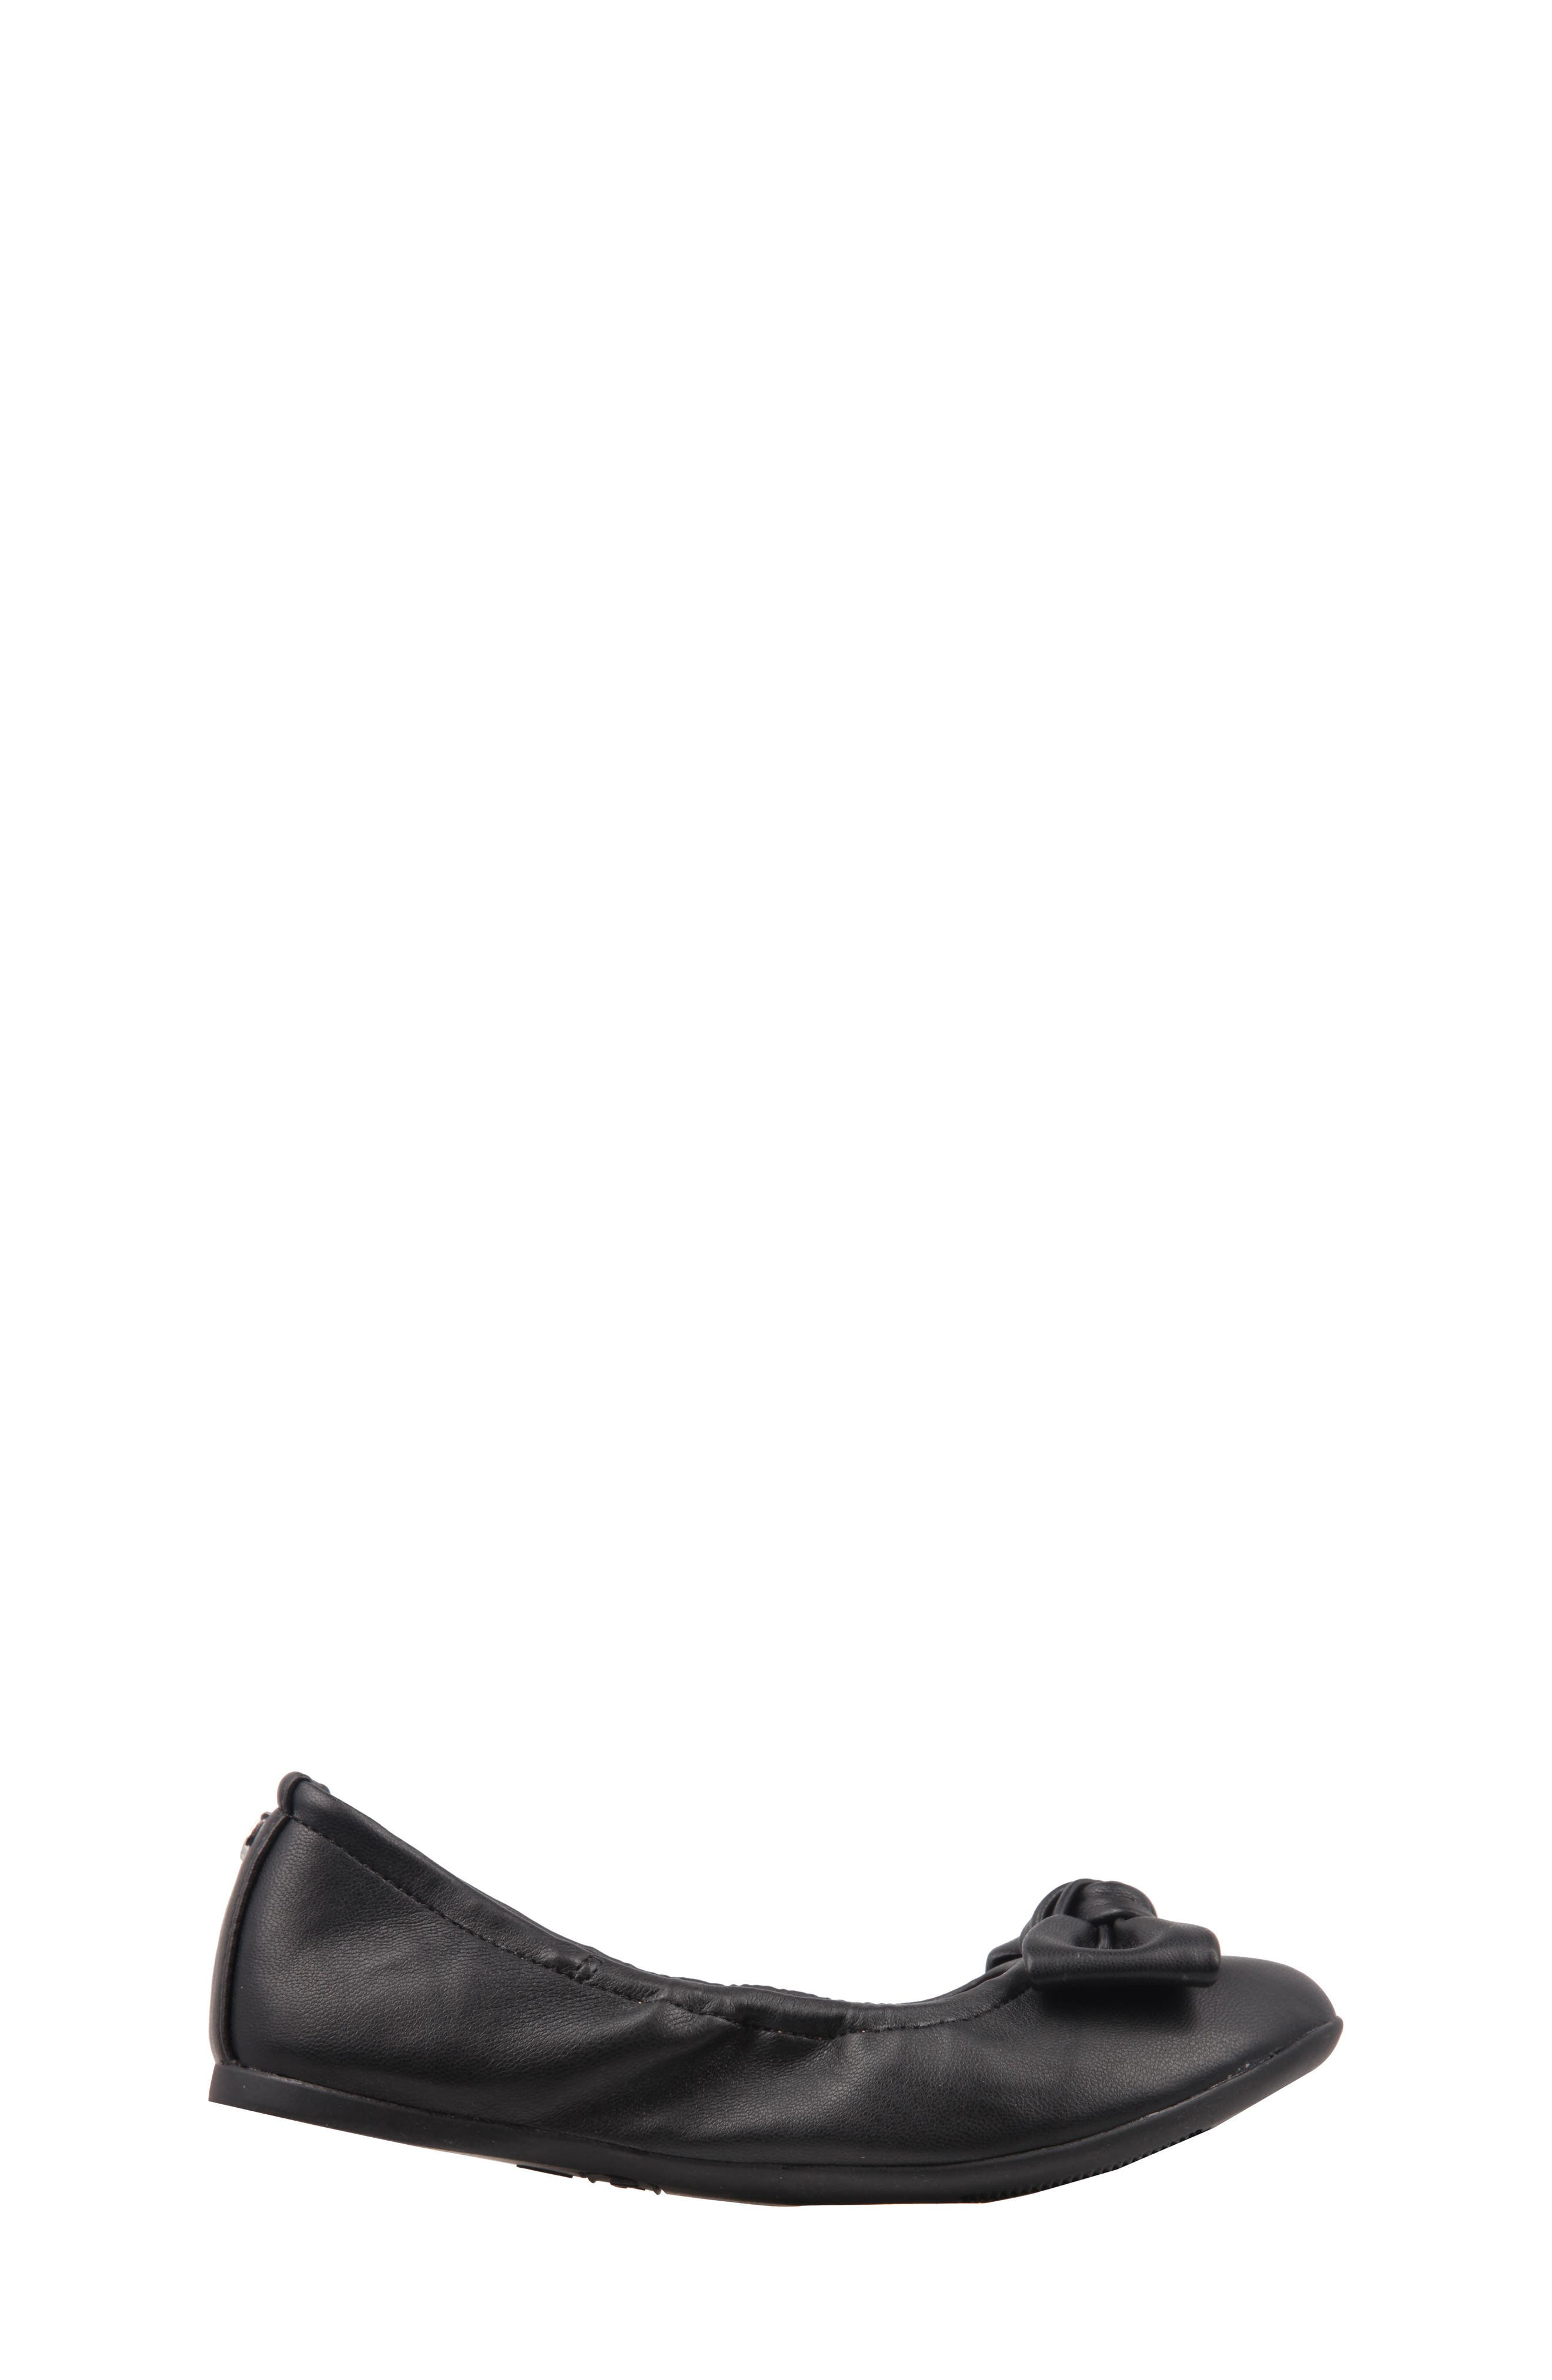 Karla Bow Ballet Flat,                             Alternate thumbnail 3, color,                             Black Smooth Leather